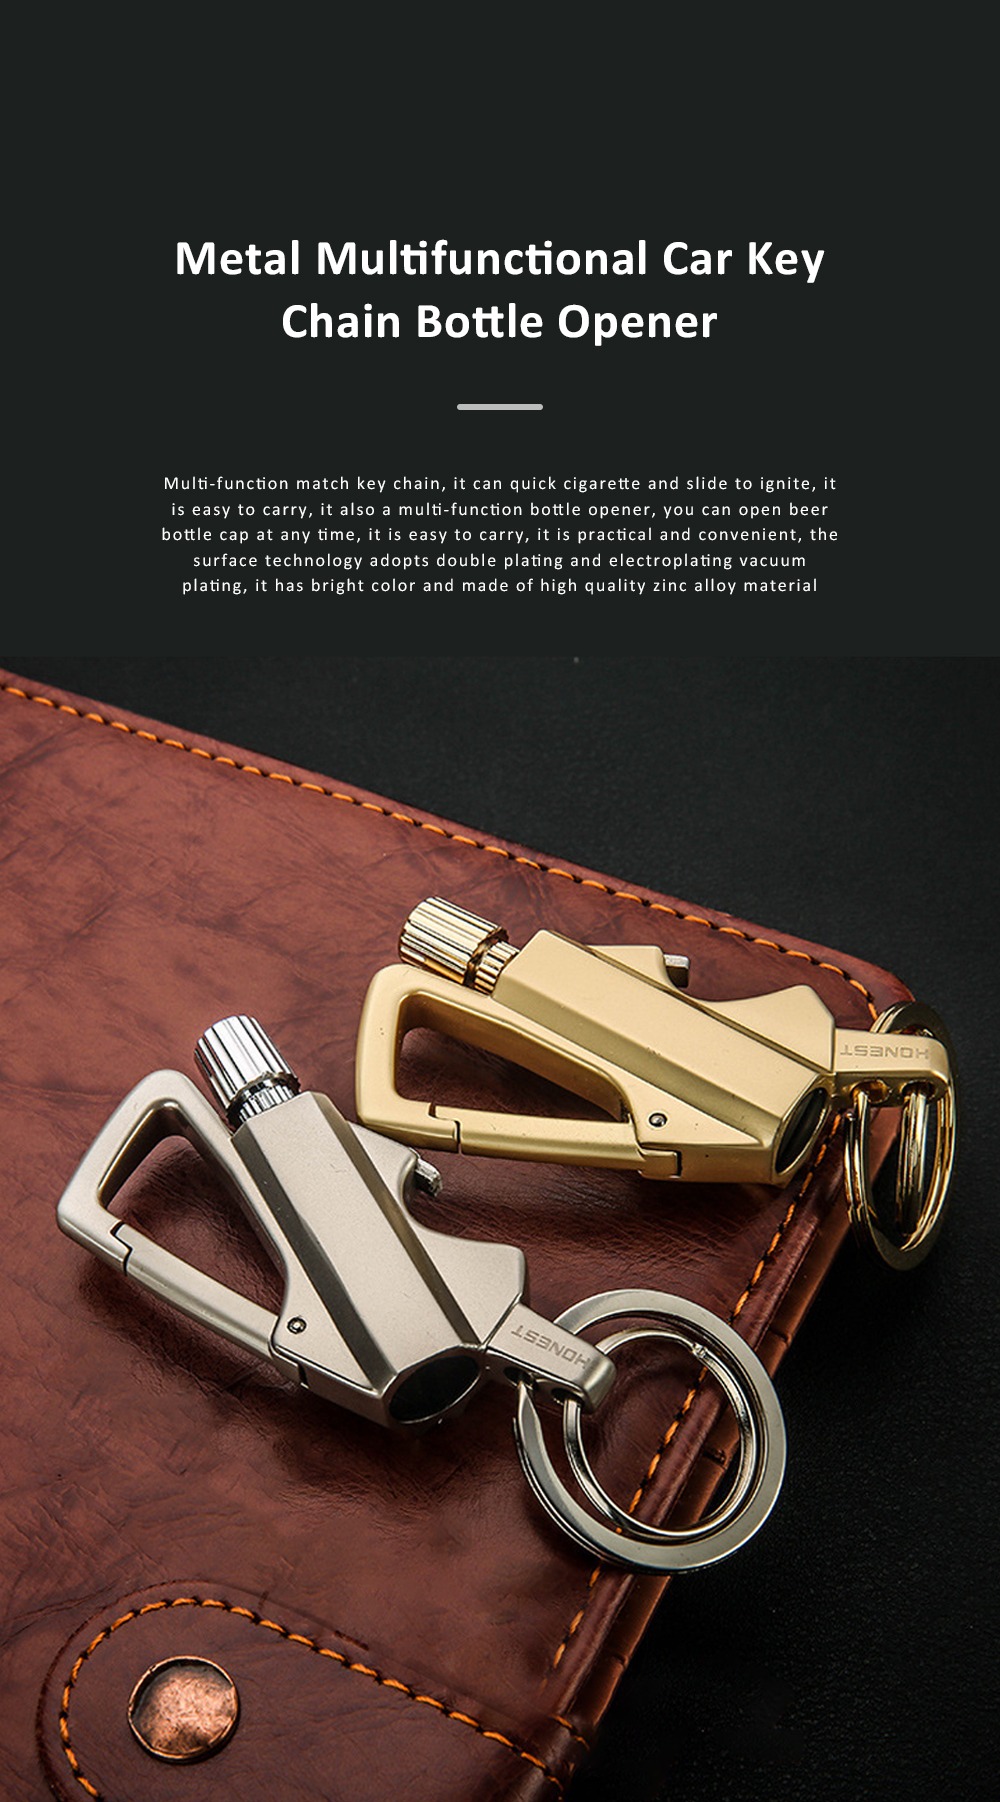 3 In 1 Classic Fashion Simple Metal Zinc Alloy Car Key Chain Bottle Opener Thousand Matches Carabiner Multifunctional Key Chain 0